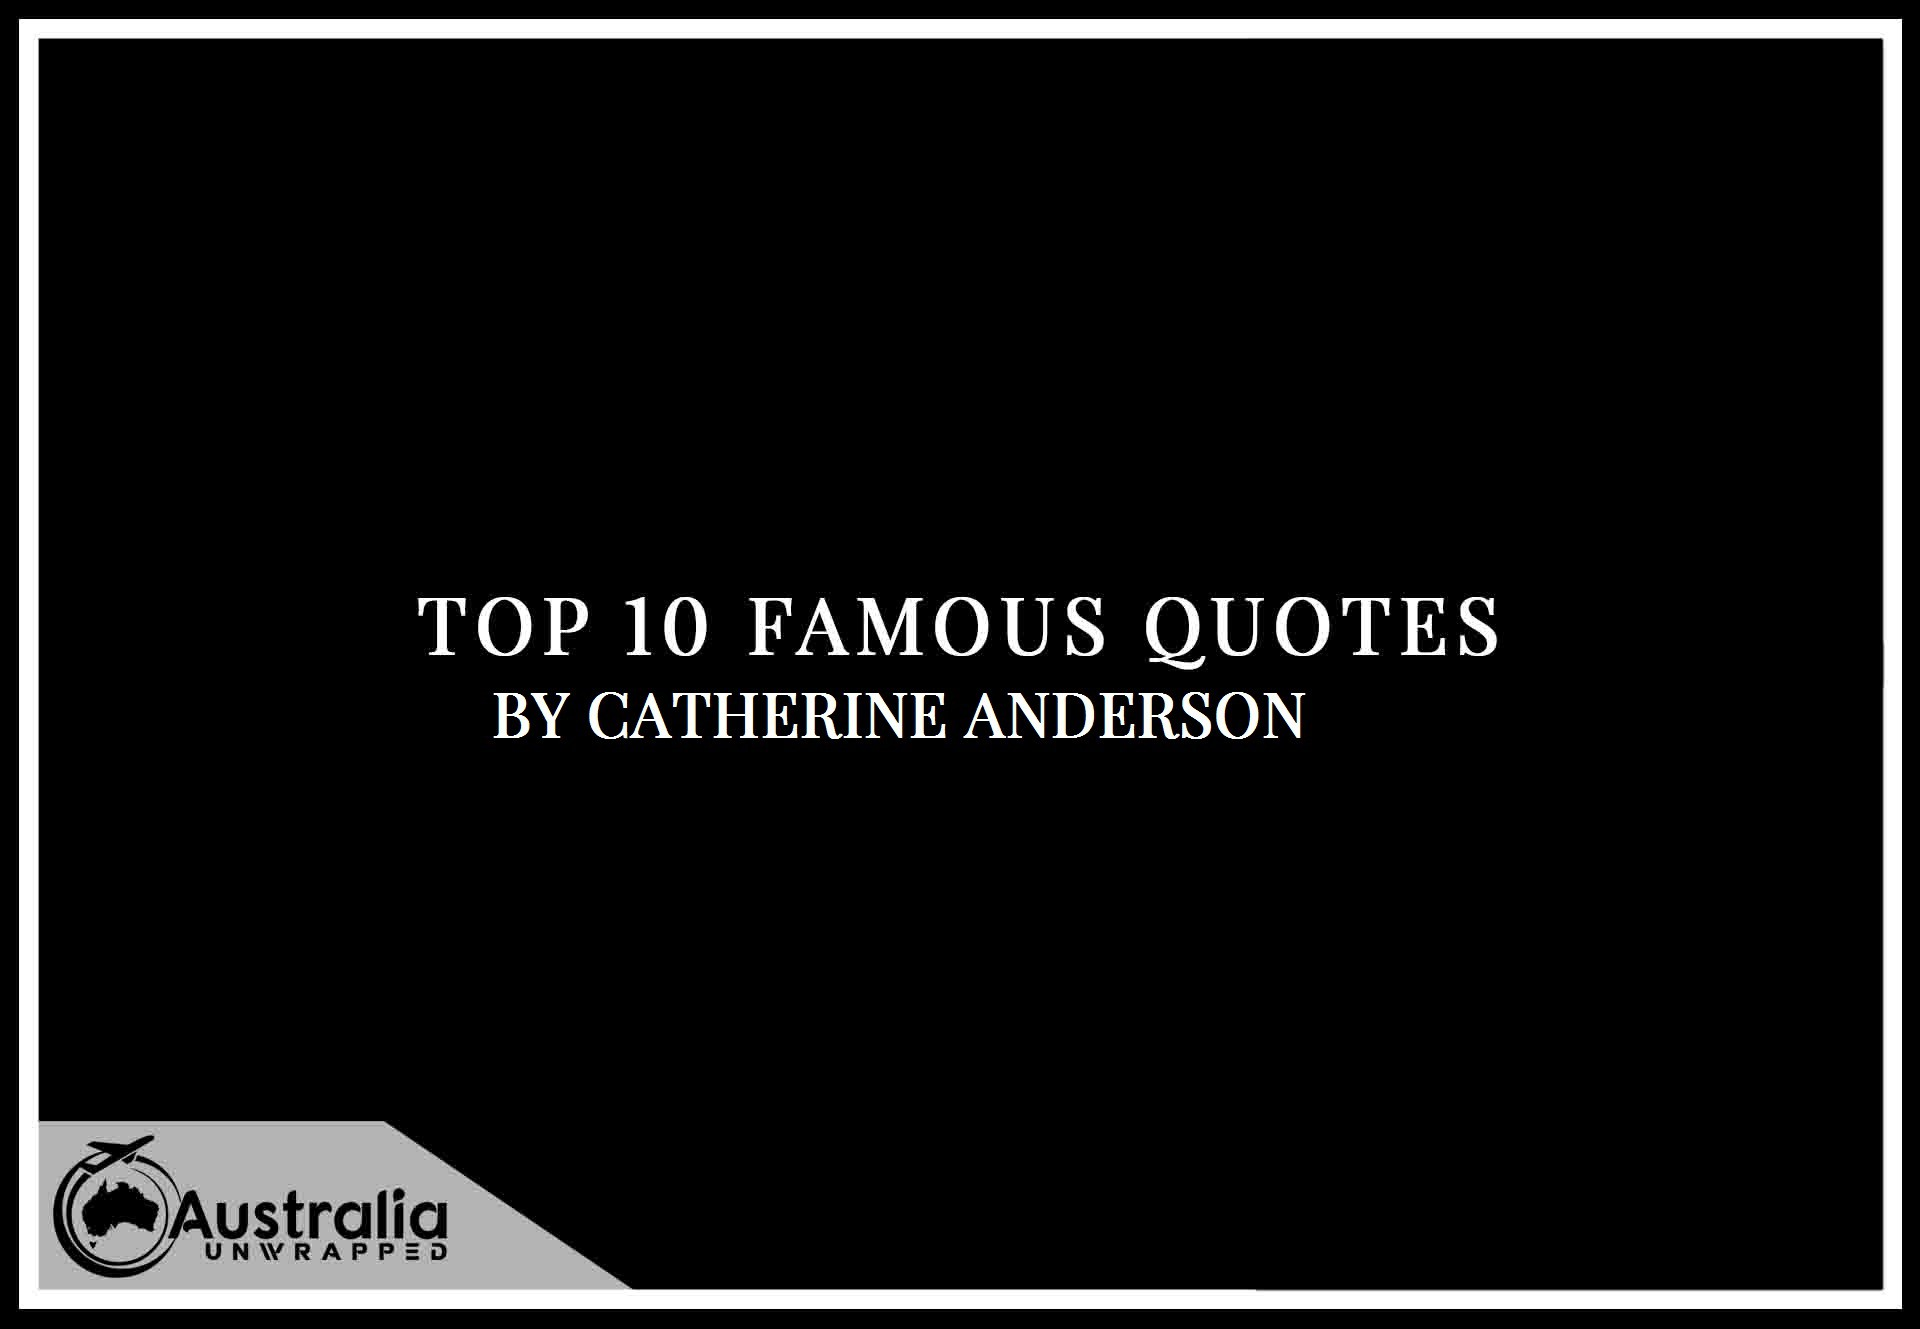 Catherine Anderson's Top 10 Popular and Famous Quotes